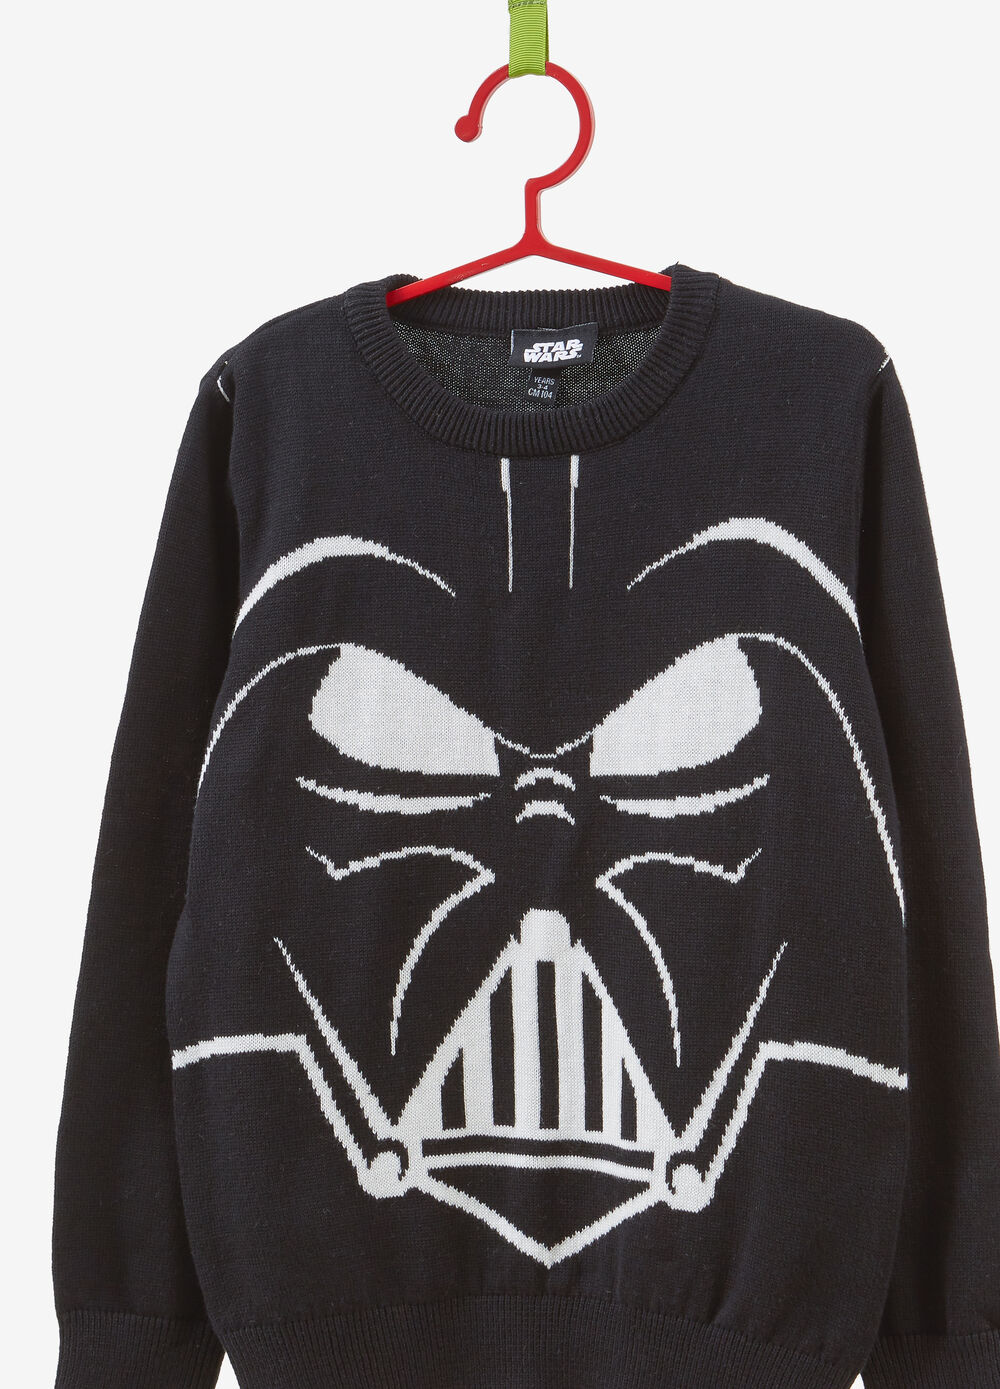 Pullover in 100% cotton with Darth Vader embroidery